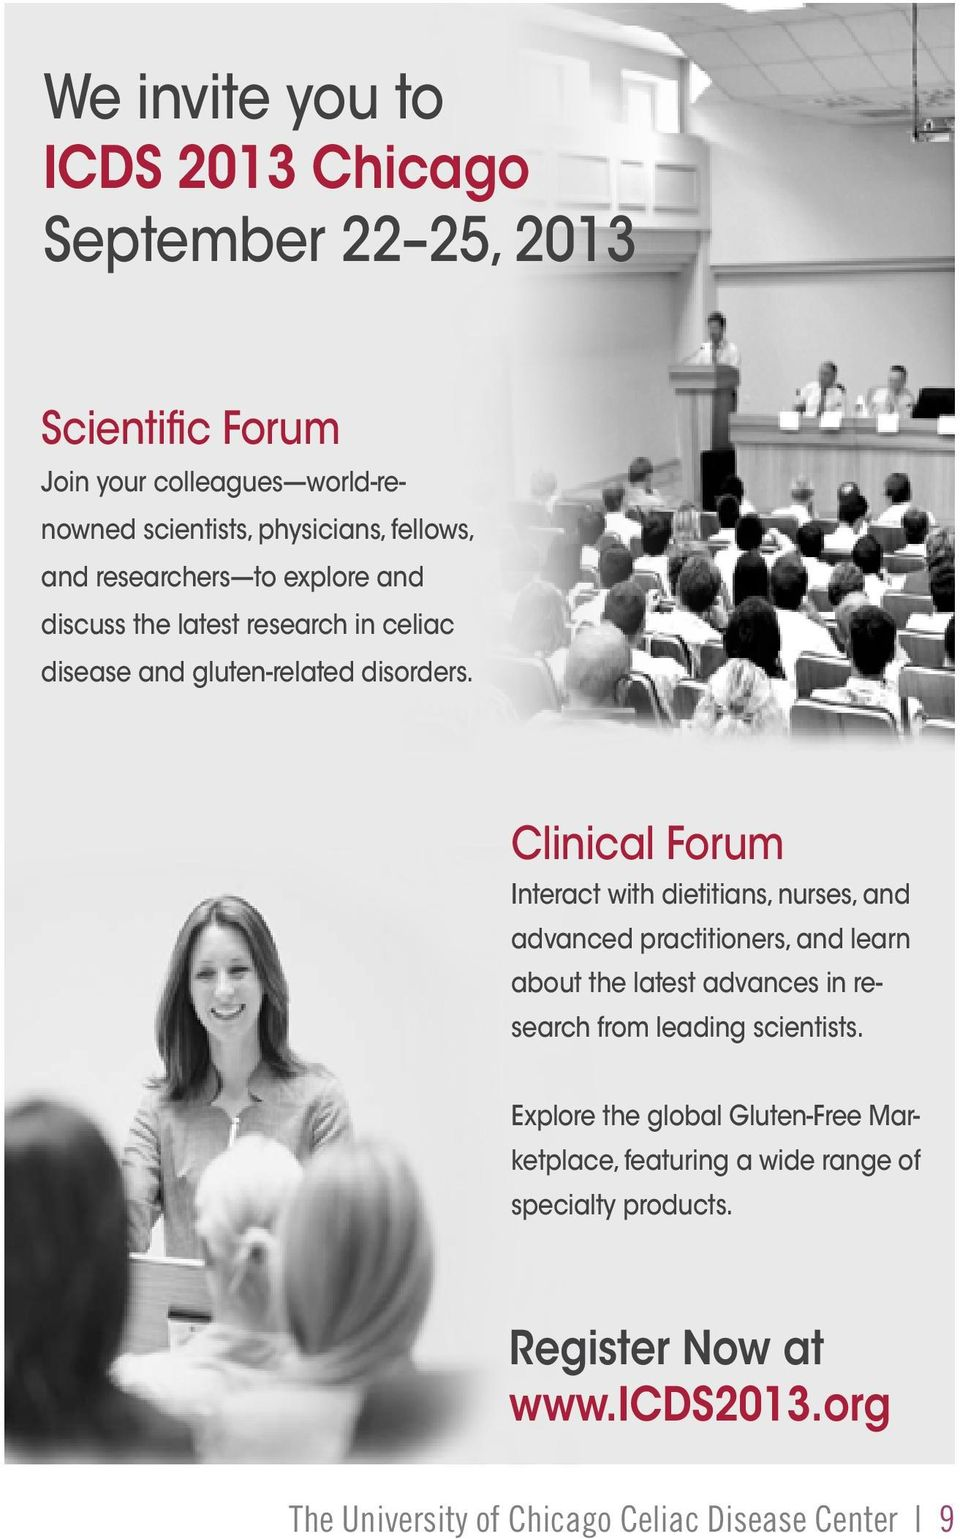 Clinical Forum Interact with dietitians, nurses, and advanced practitioners, and learn about the latest advances in research from leading scientists.